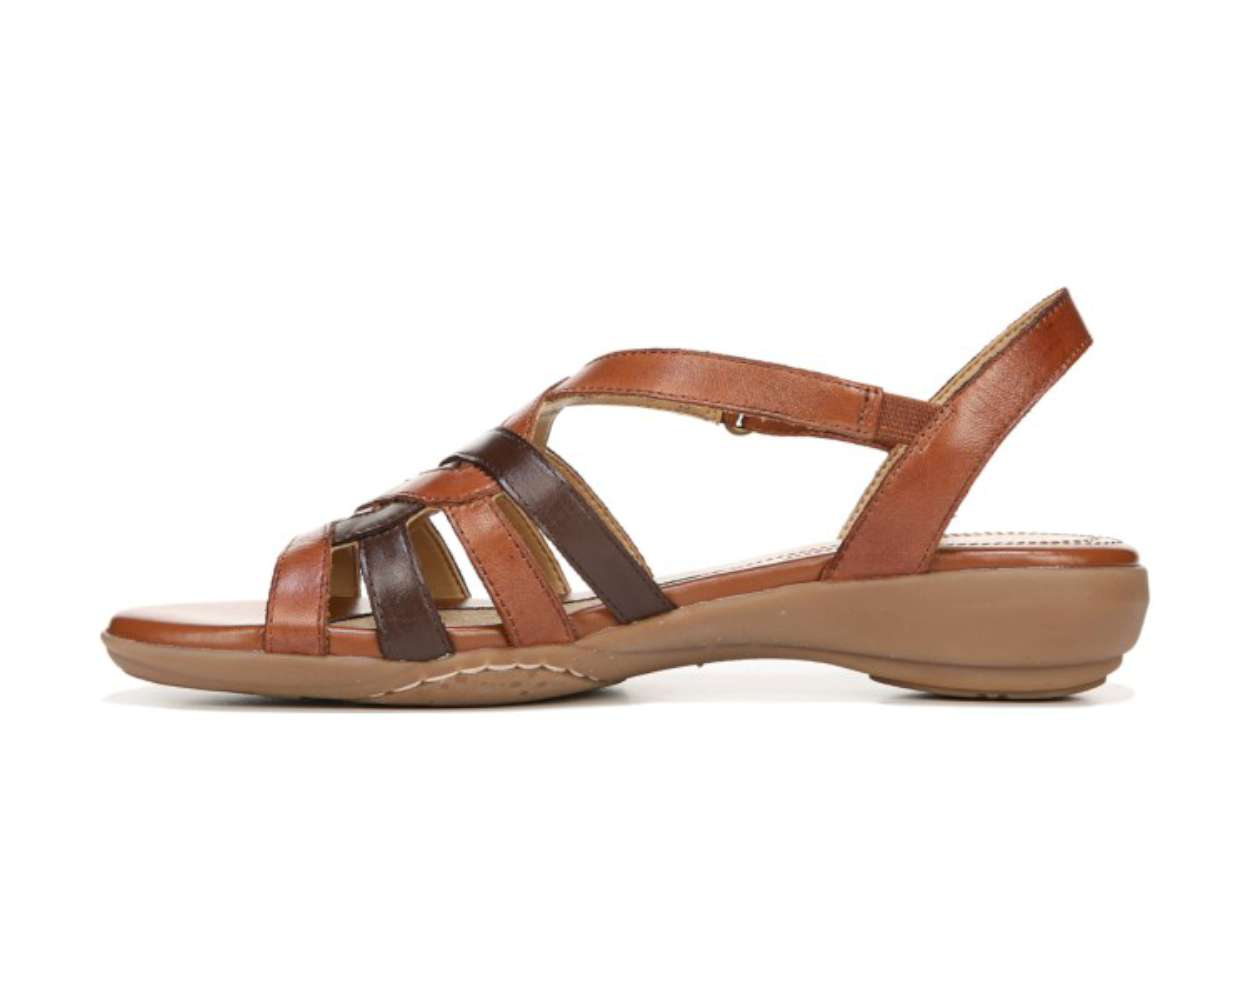 Naturalizer Womens Charm Leather Open Toe Casual Strappy Sandals by Naturalizer